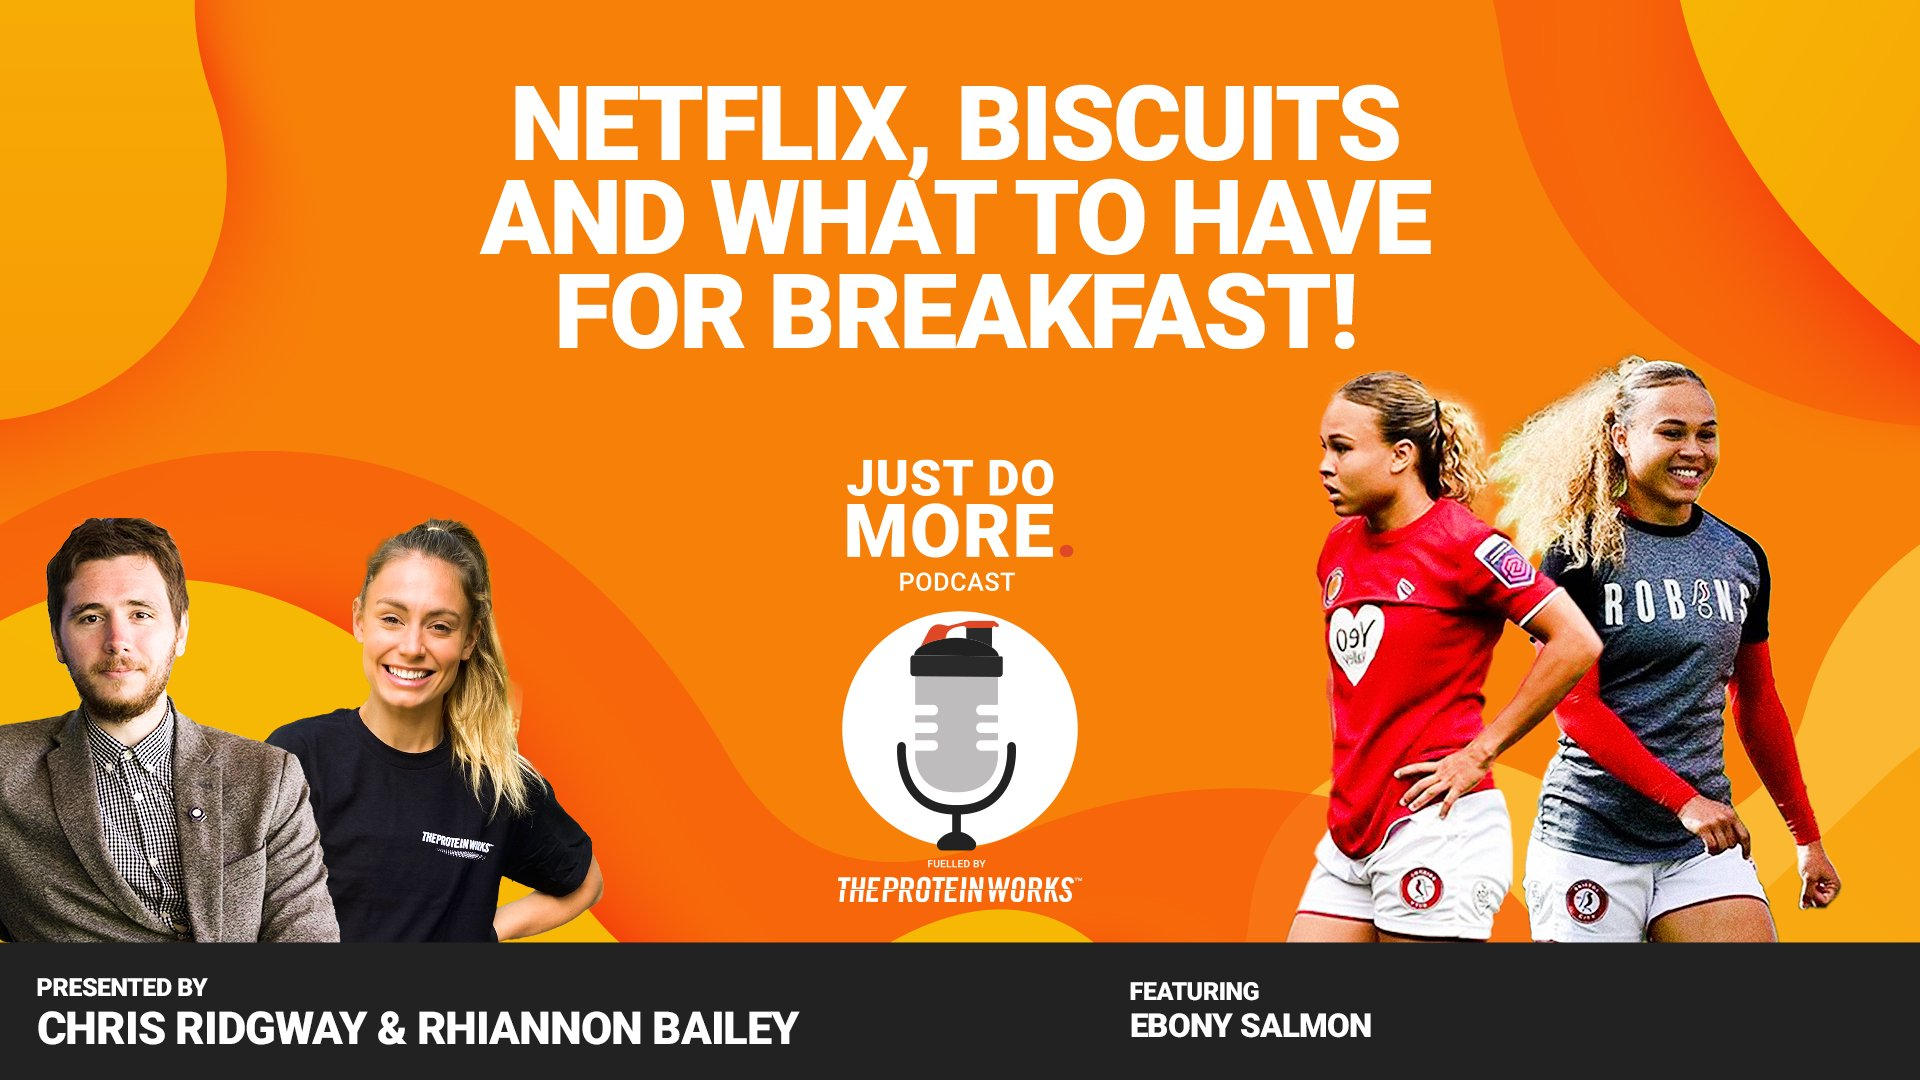 Netflix, Biscuits And What To Have For Breakfast!   Ebony Salmon   Just Do More Podcast